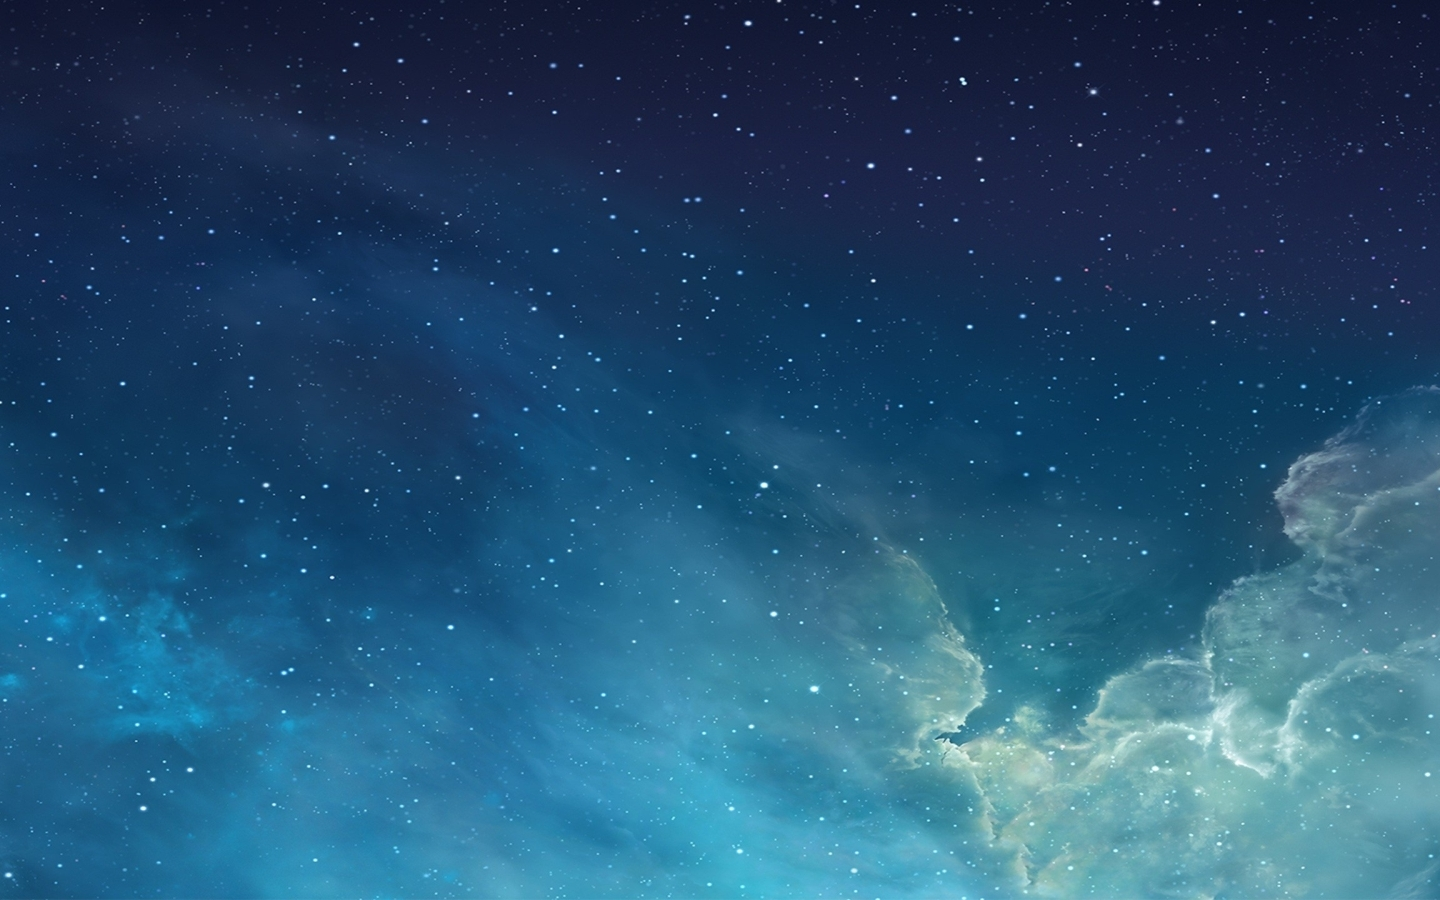 Starry Night Wallpapers on